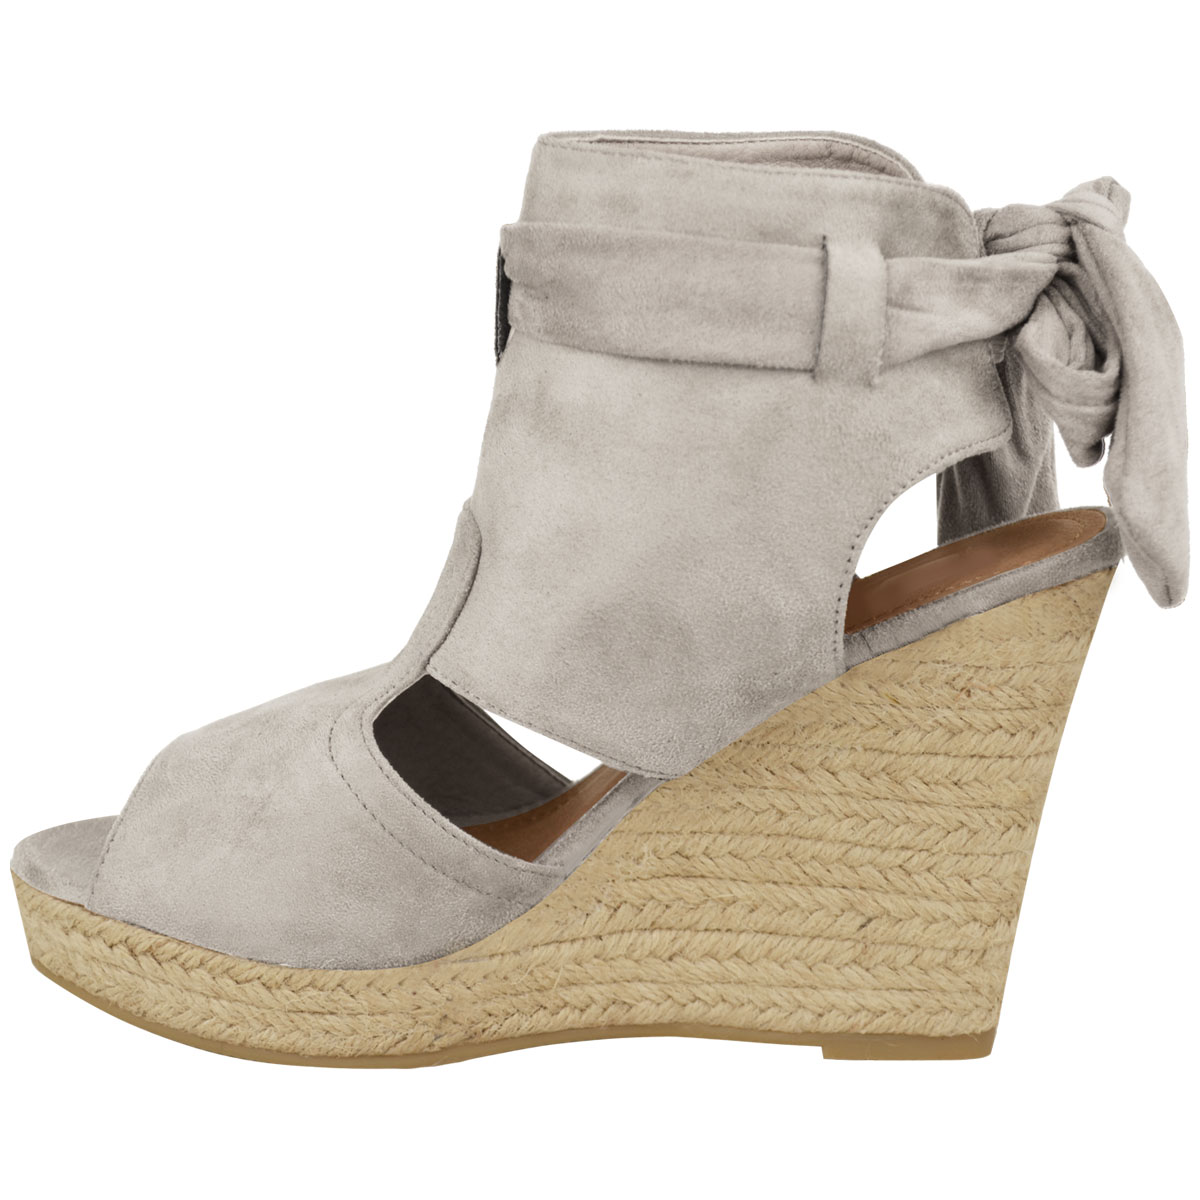 Womens Ladies High Wedge Espadrille Tie Up Platform